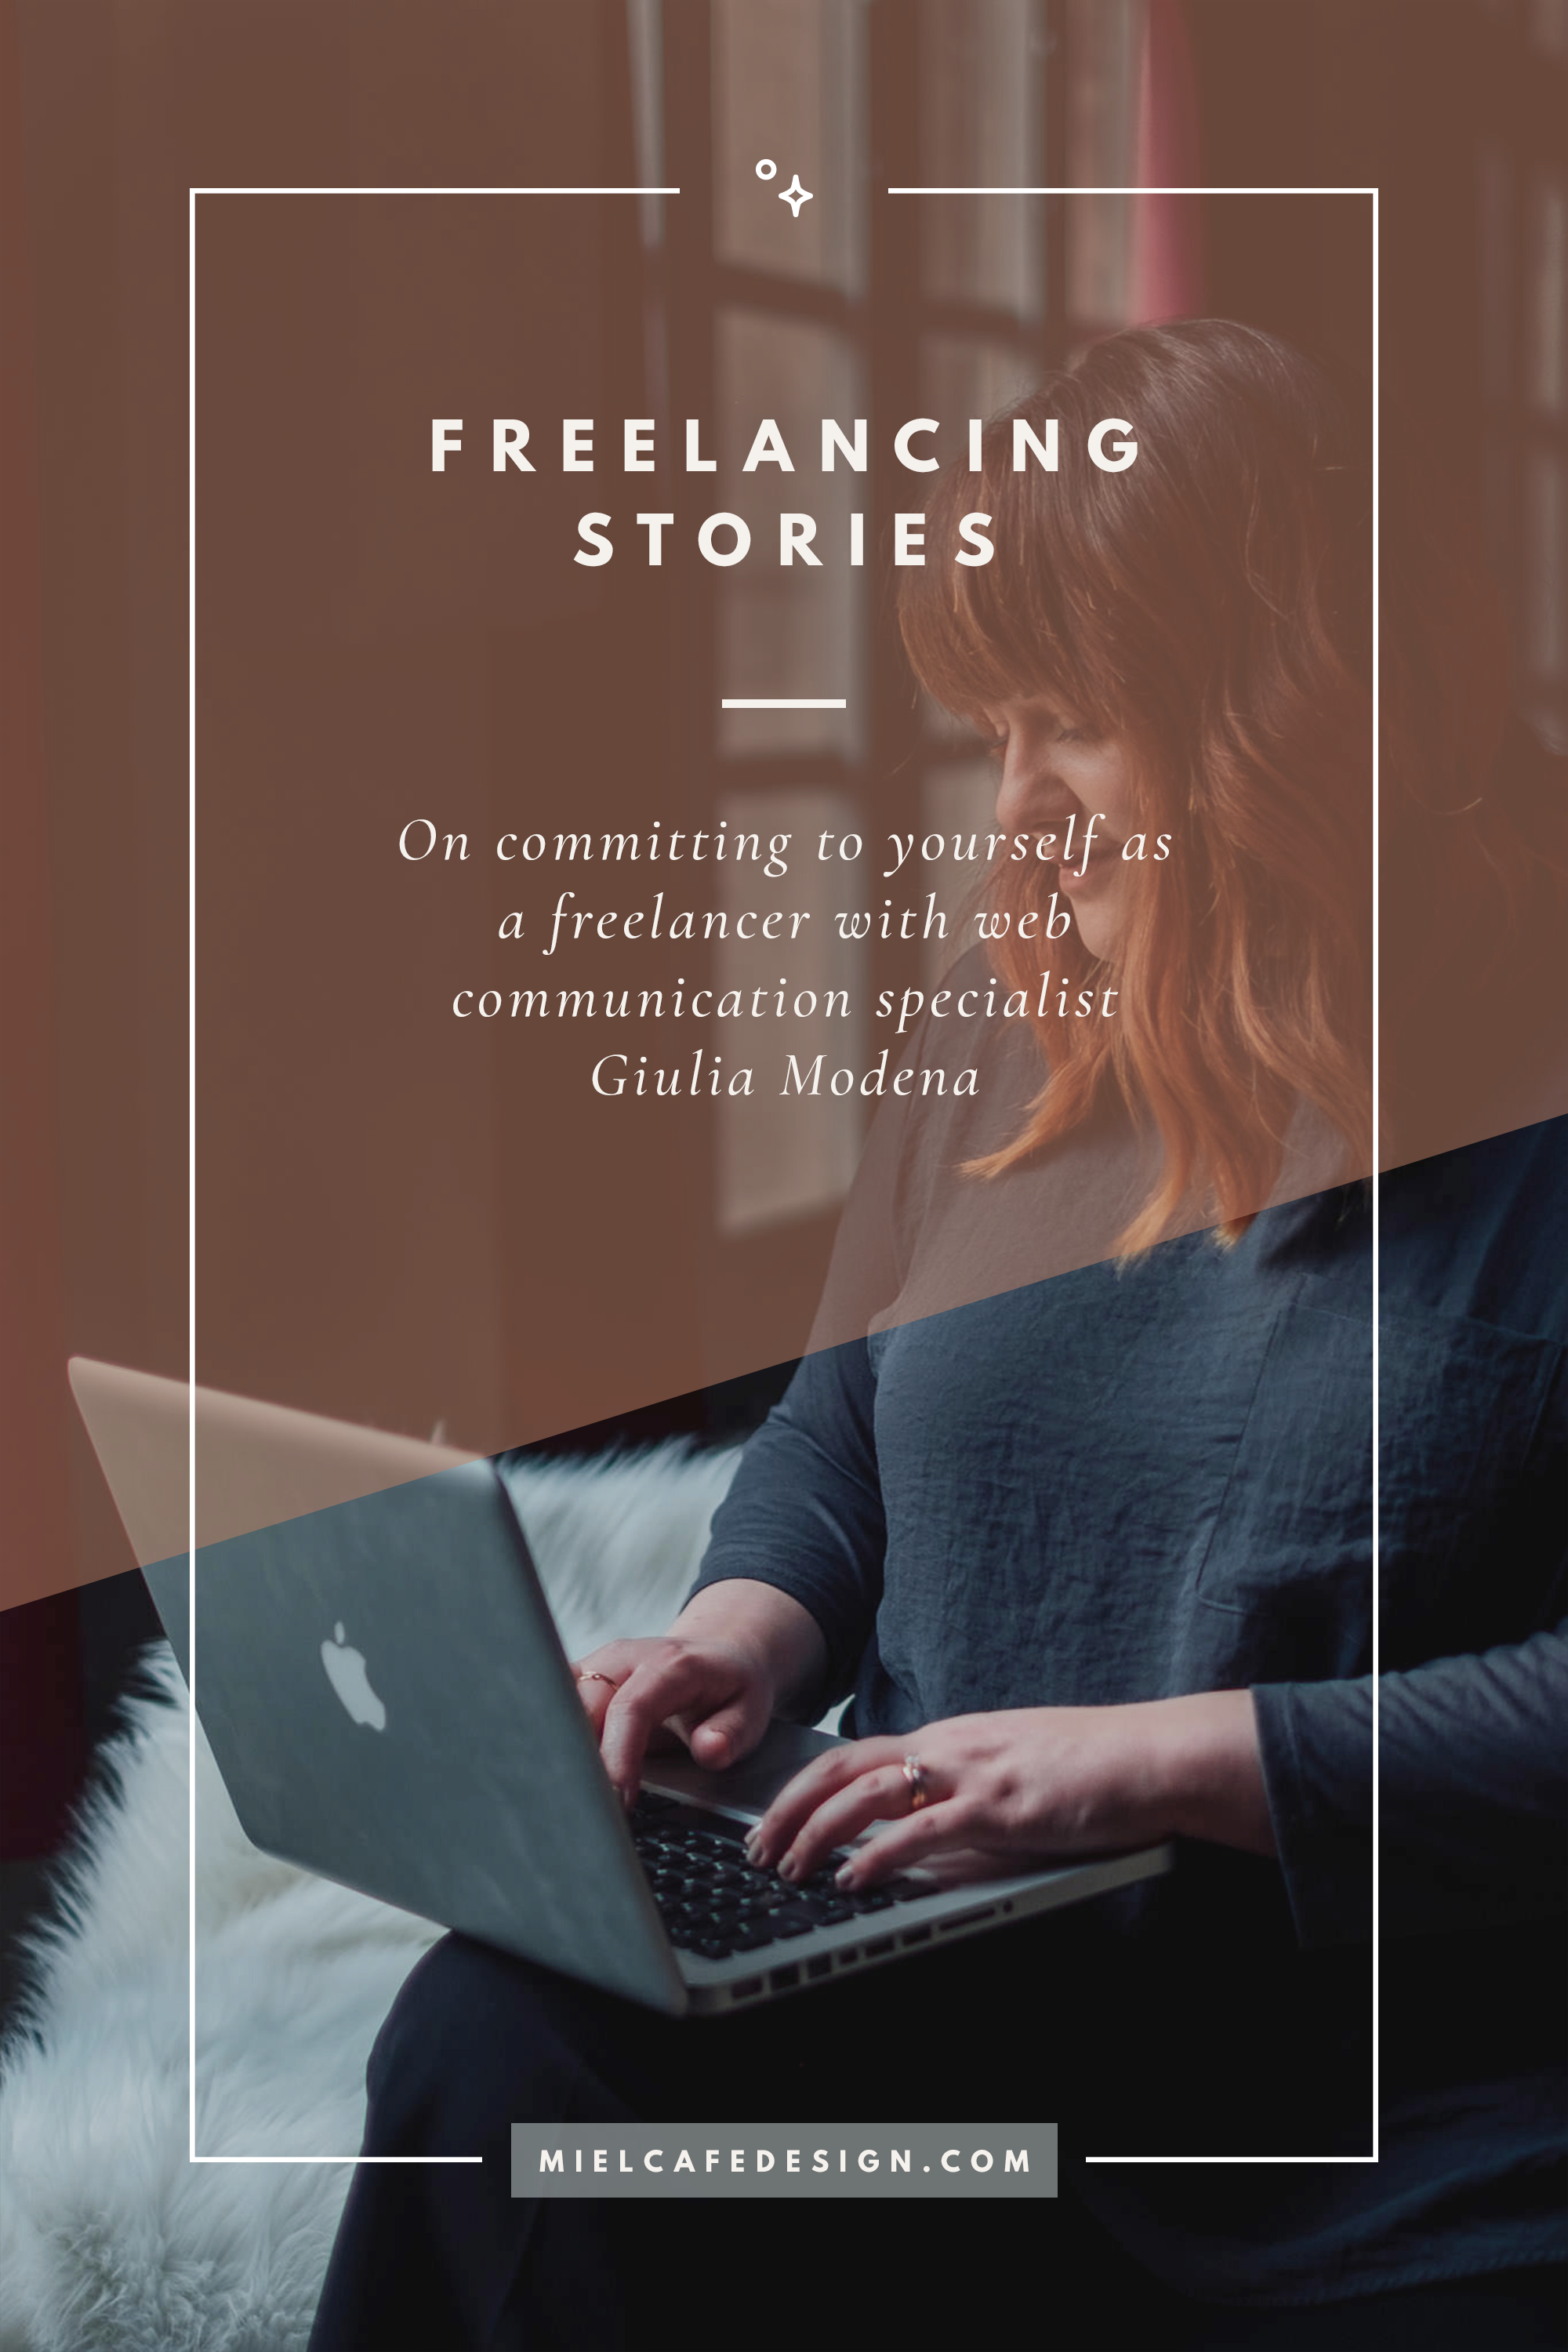 Find your path as a freelancer with web communication expert Giulia Modena